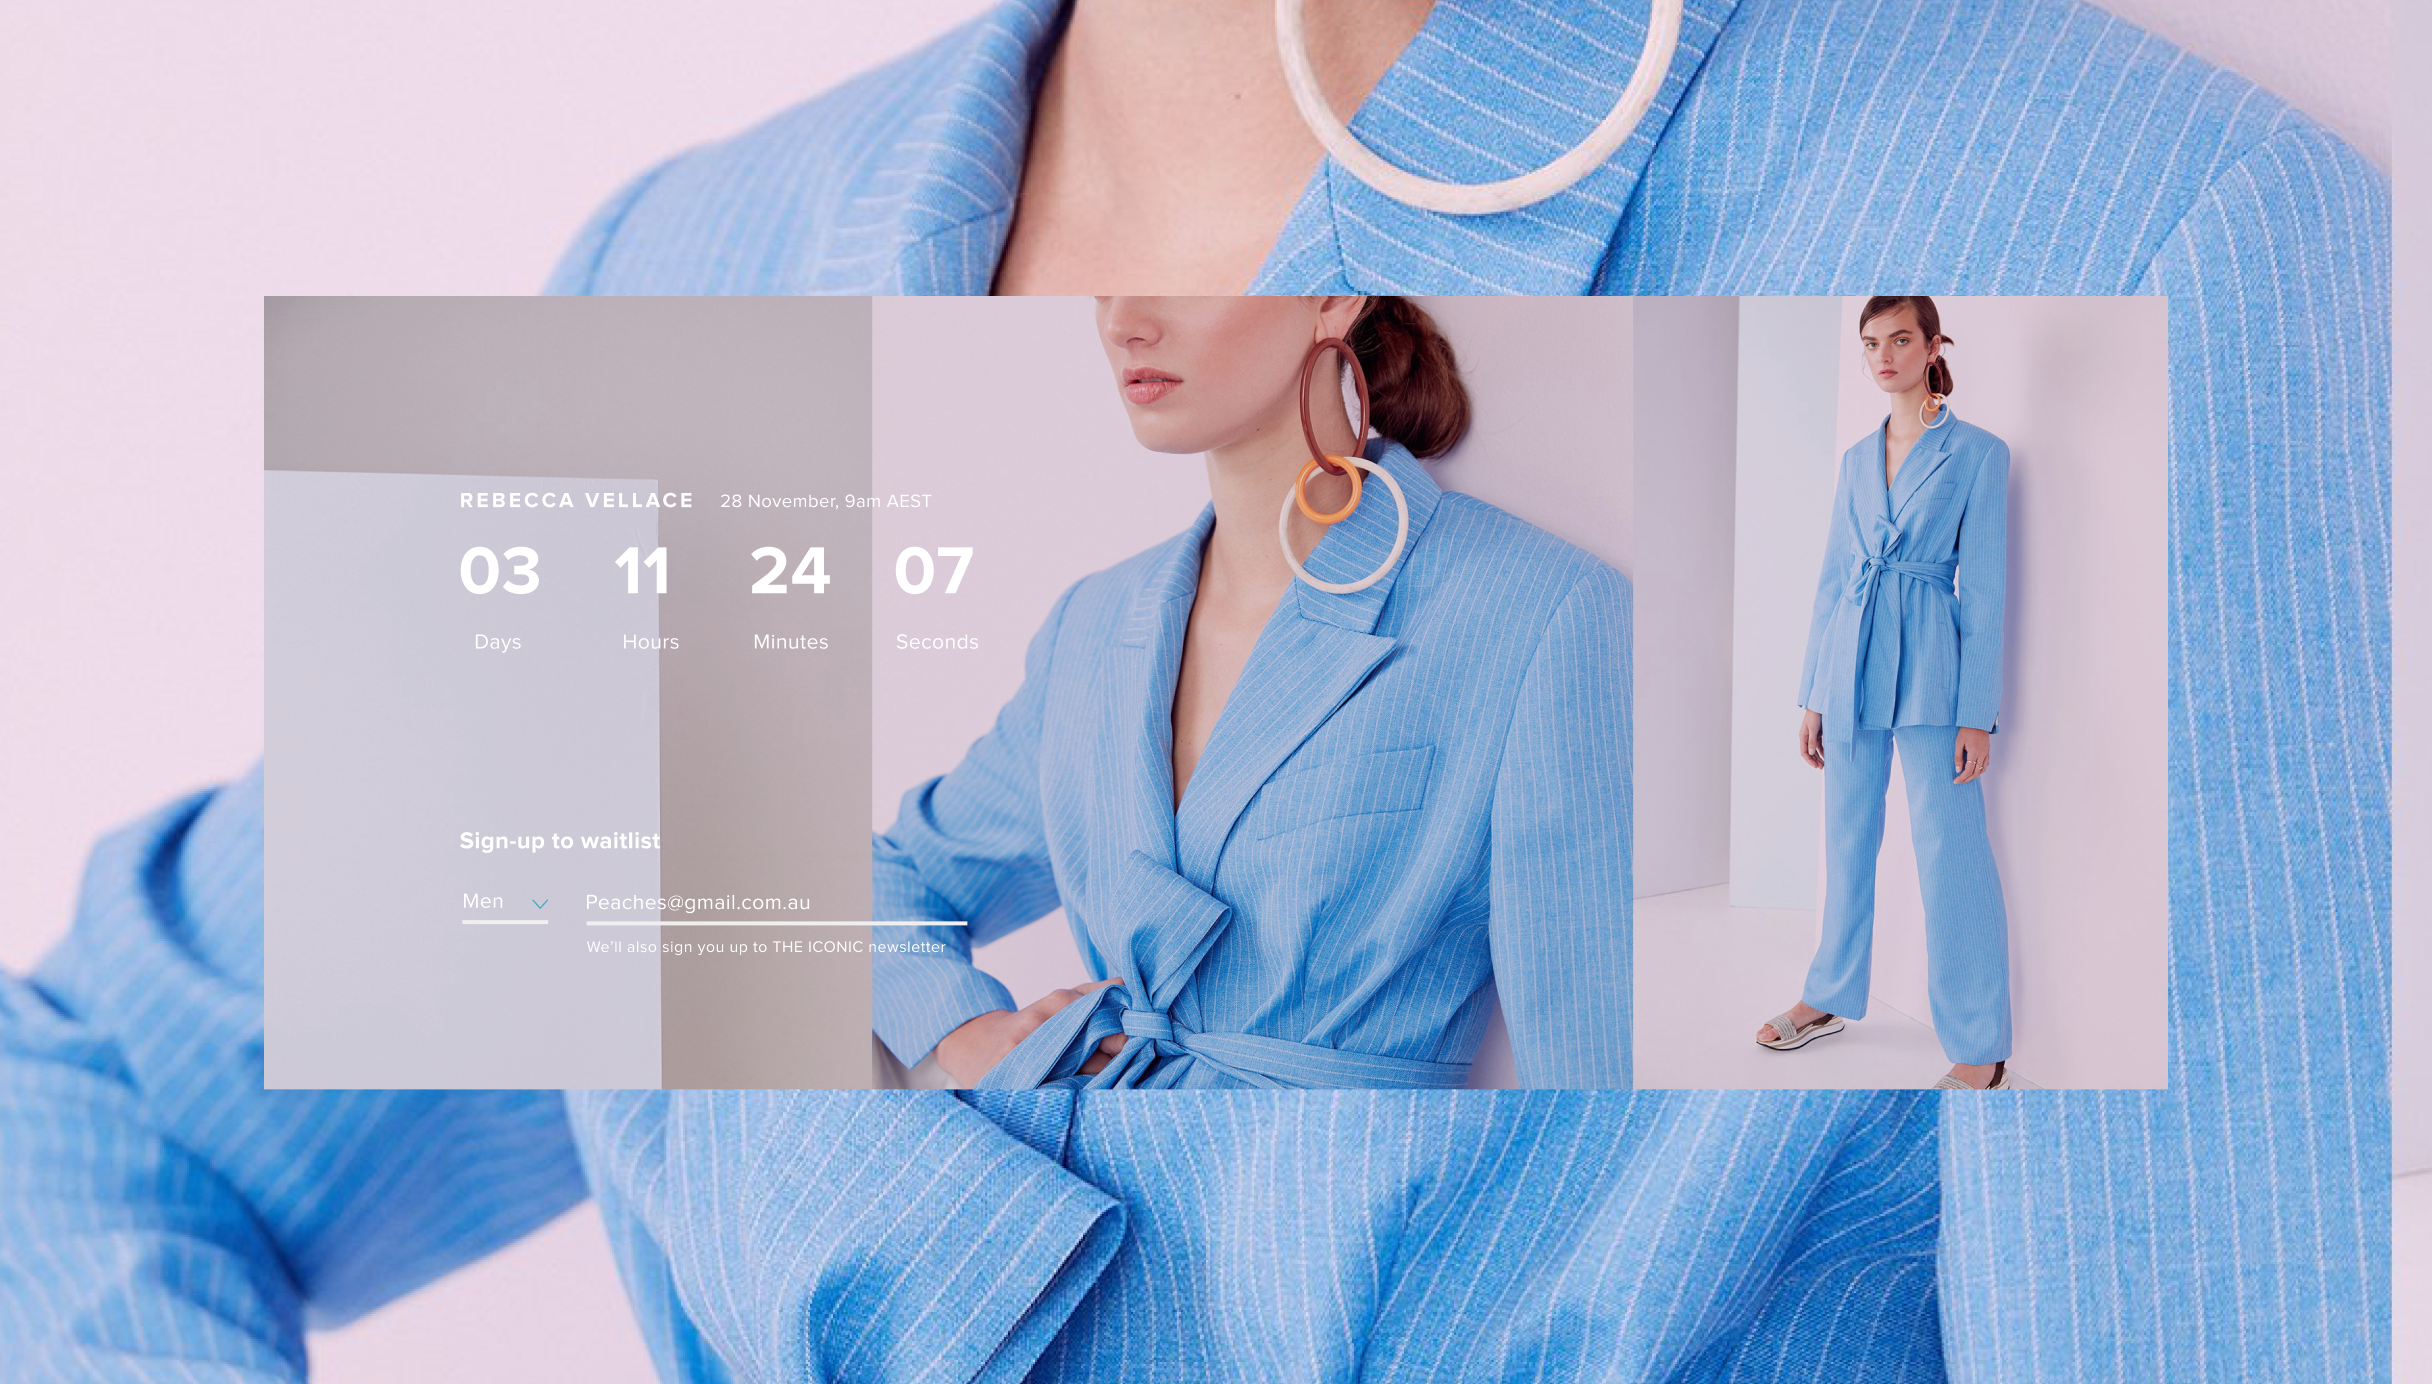 Competition slice on theiconic.com.au featuring a countdown and a woman in a suit